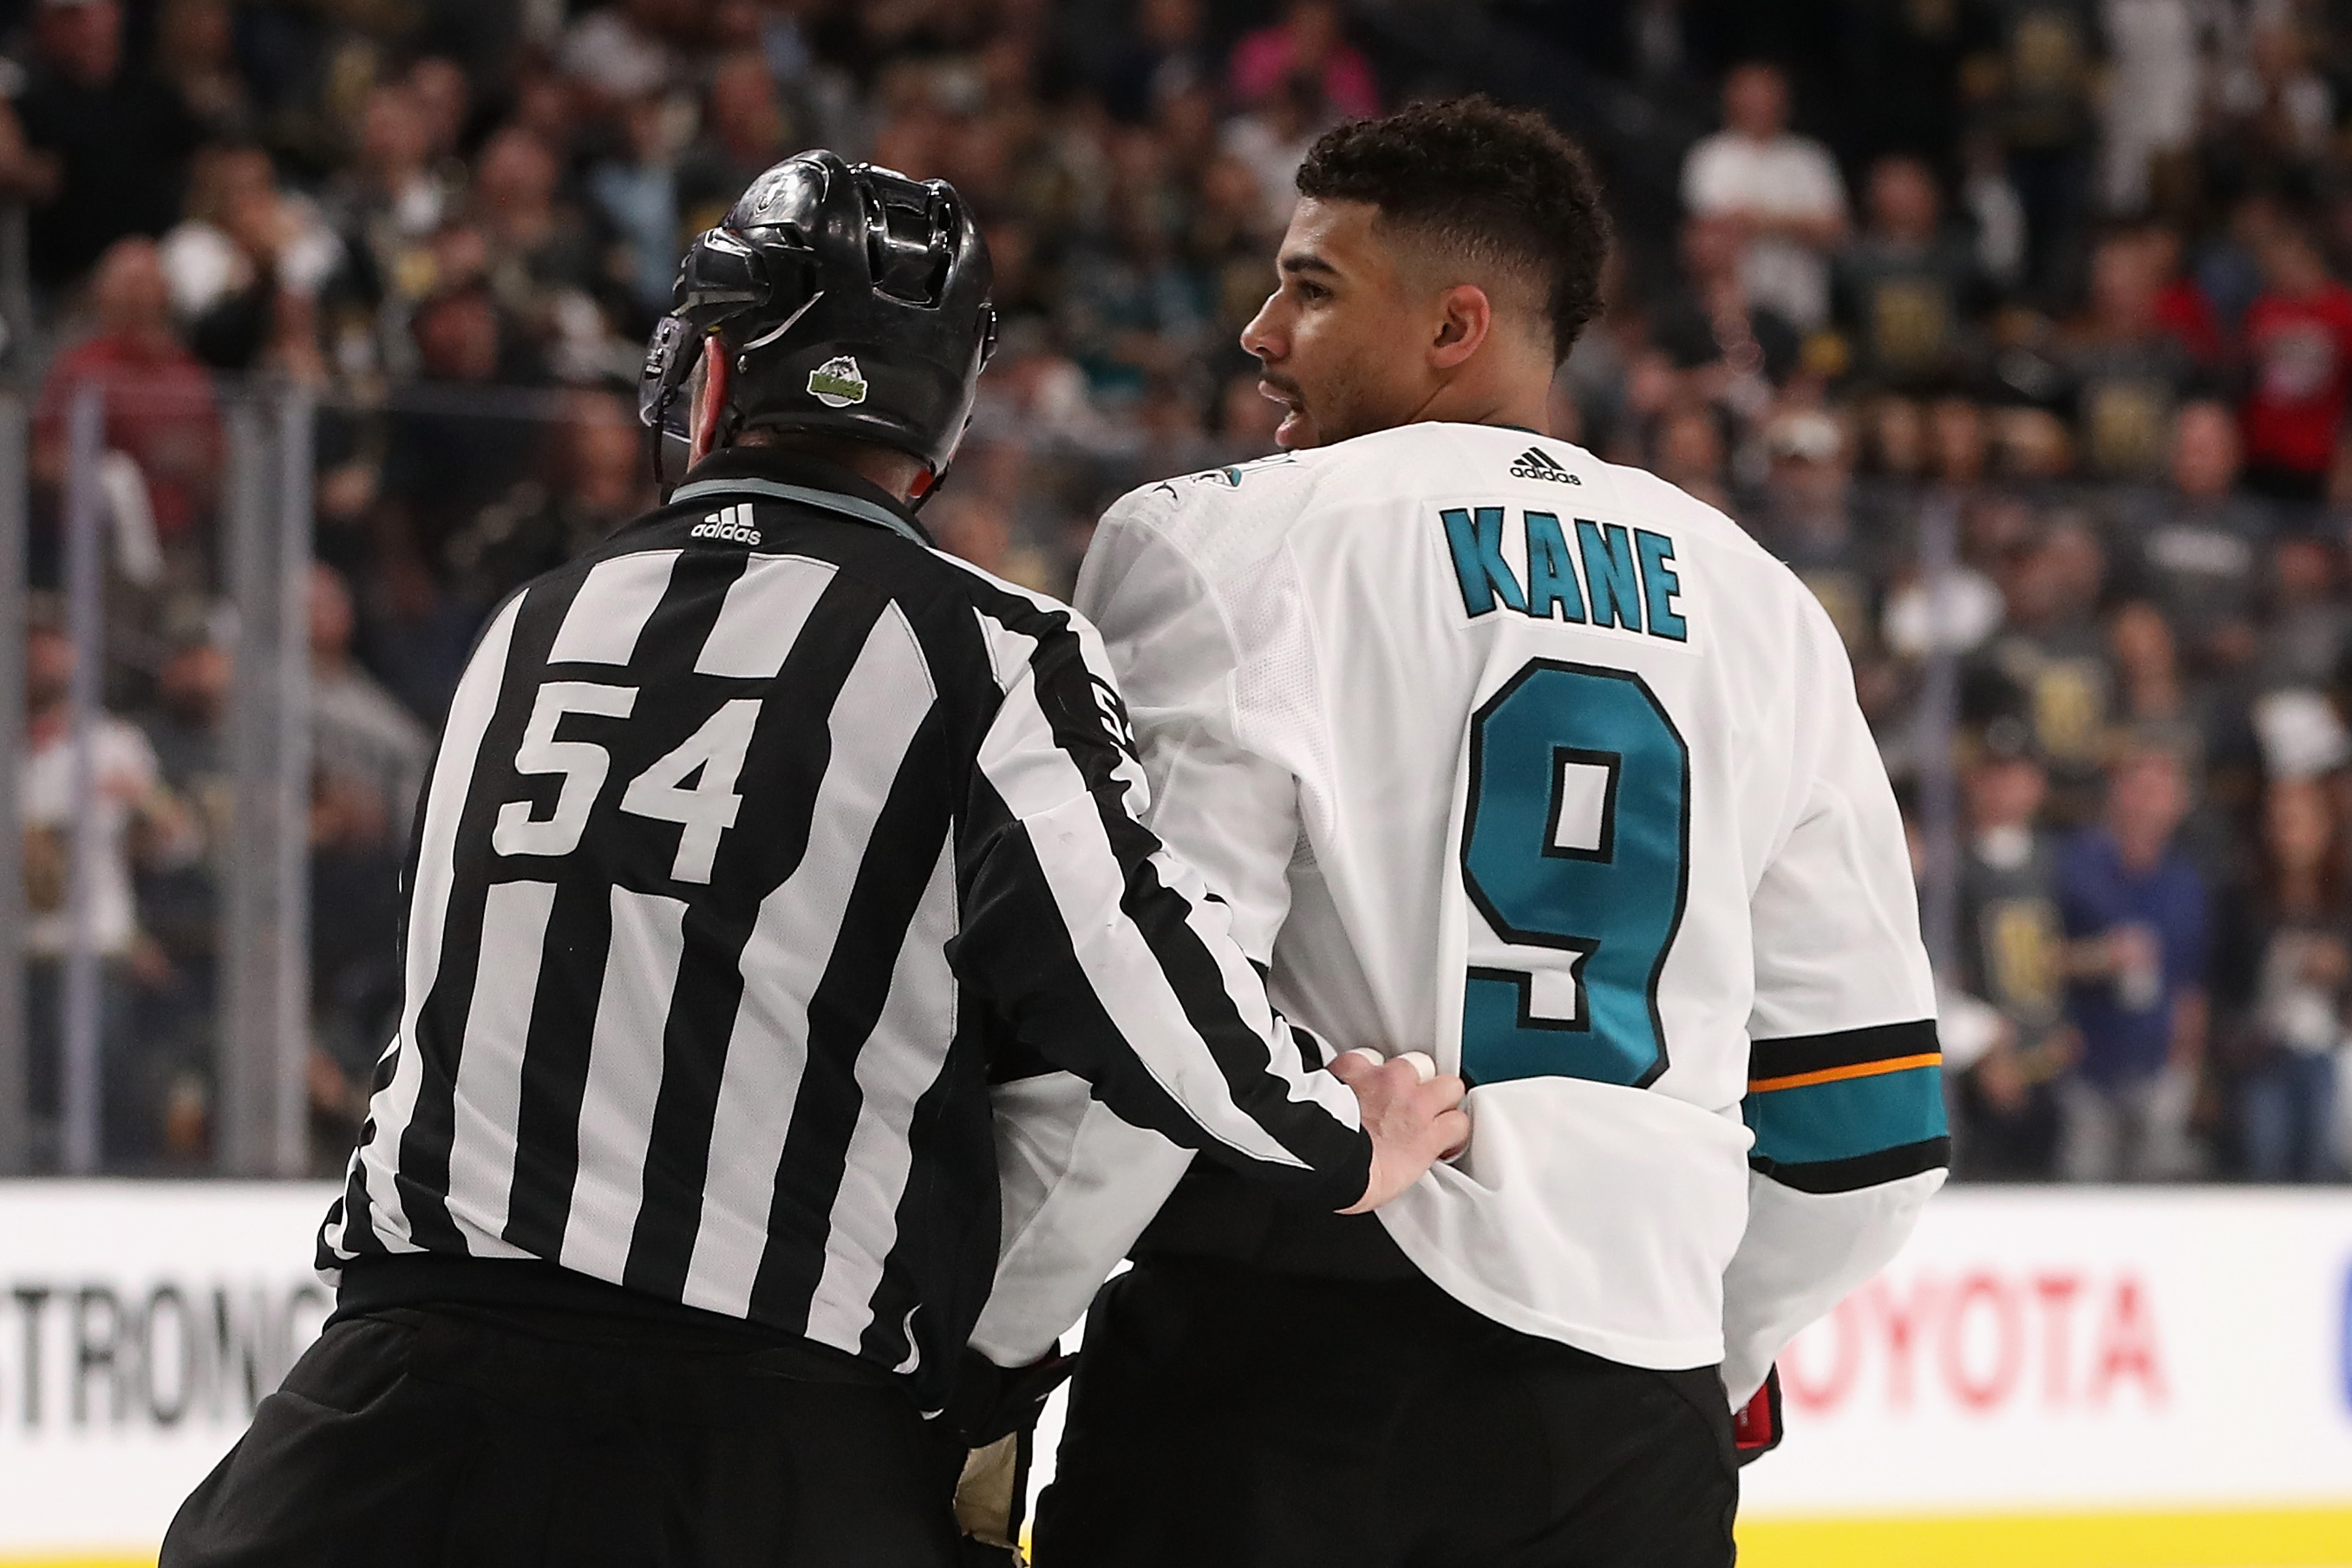 Sharks vs. Golden Knights, Game 1 on Thursday